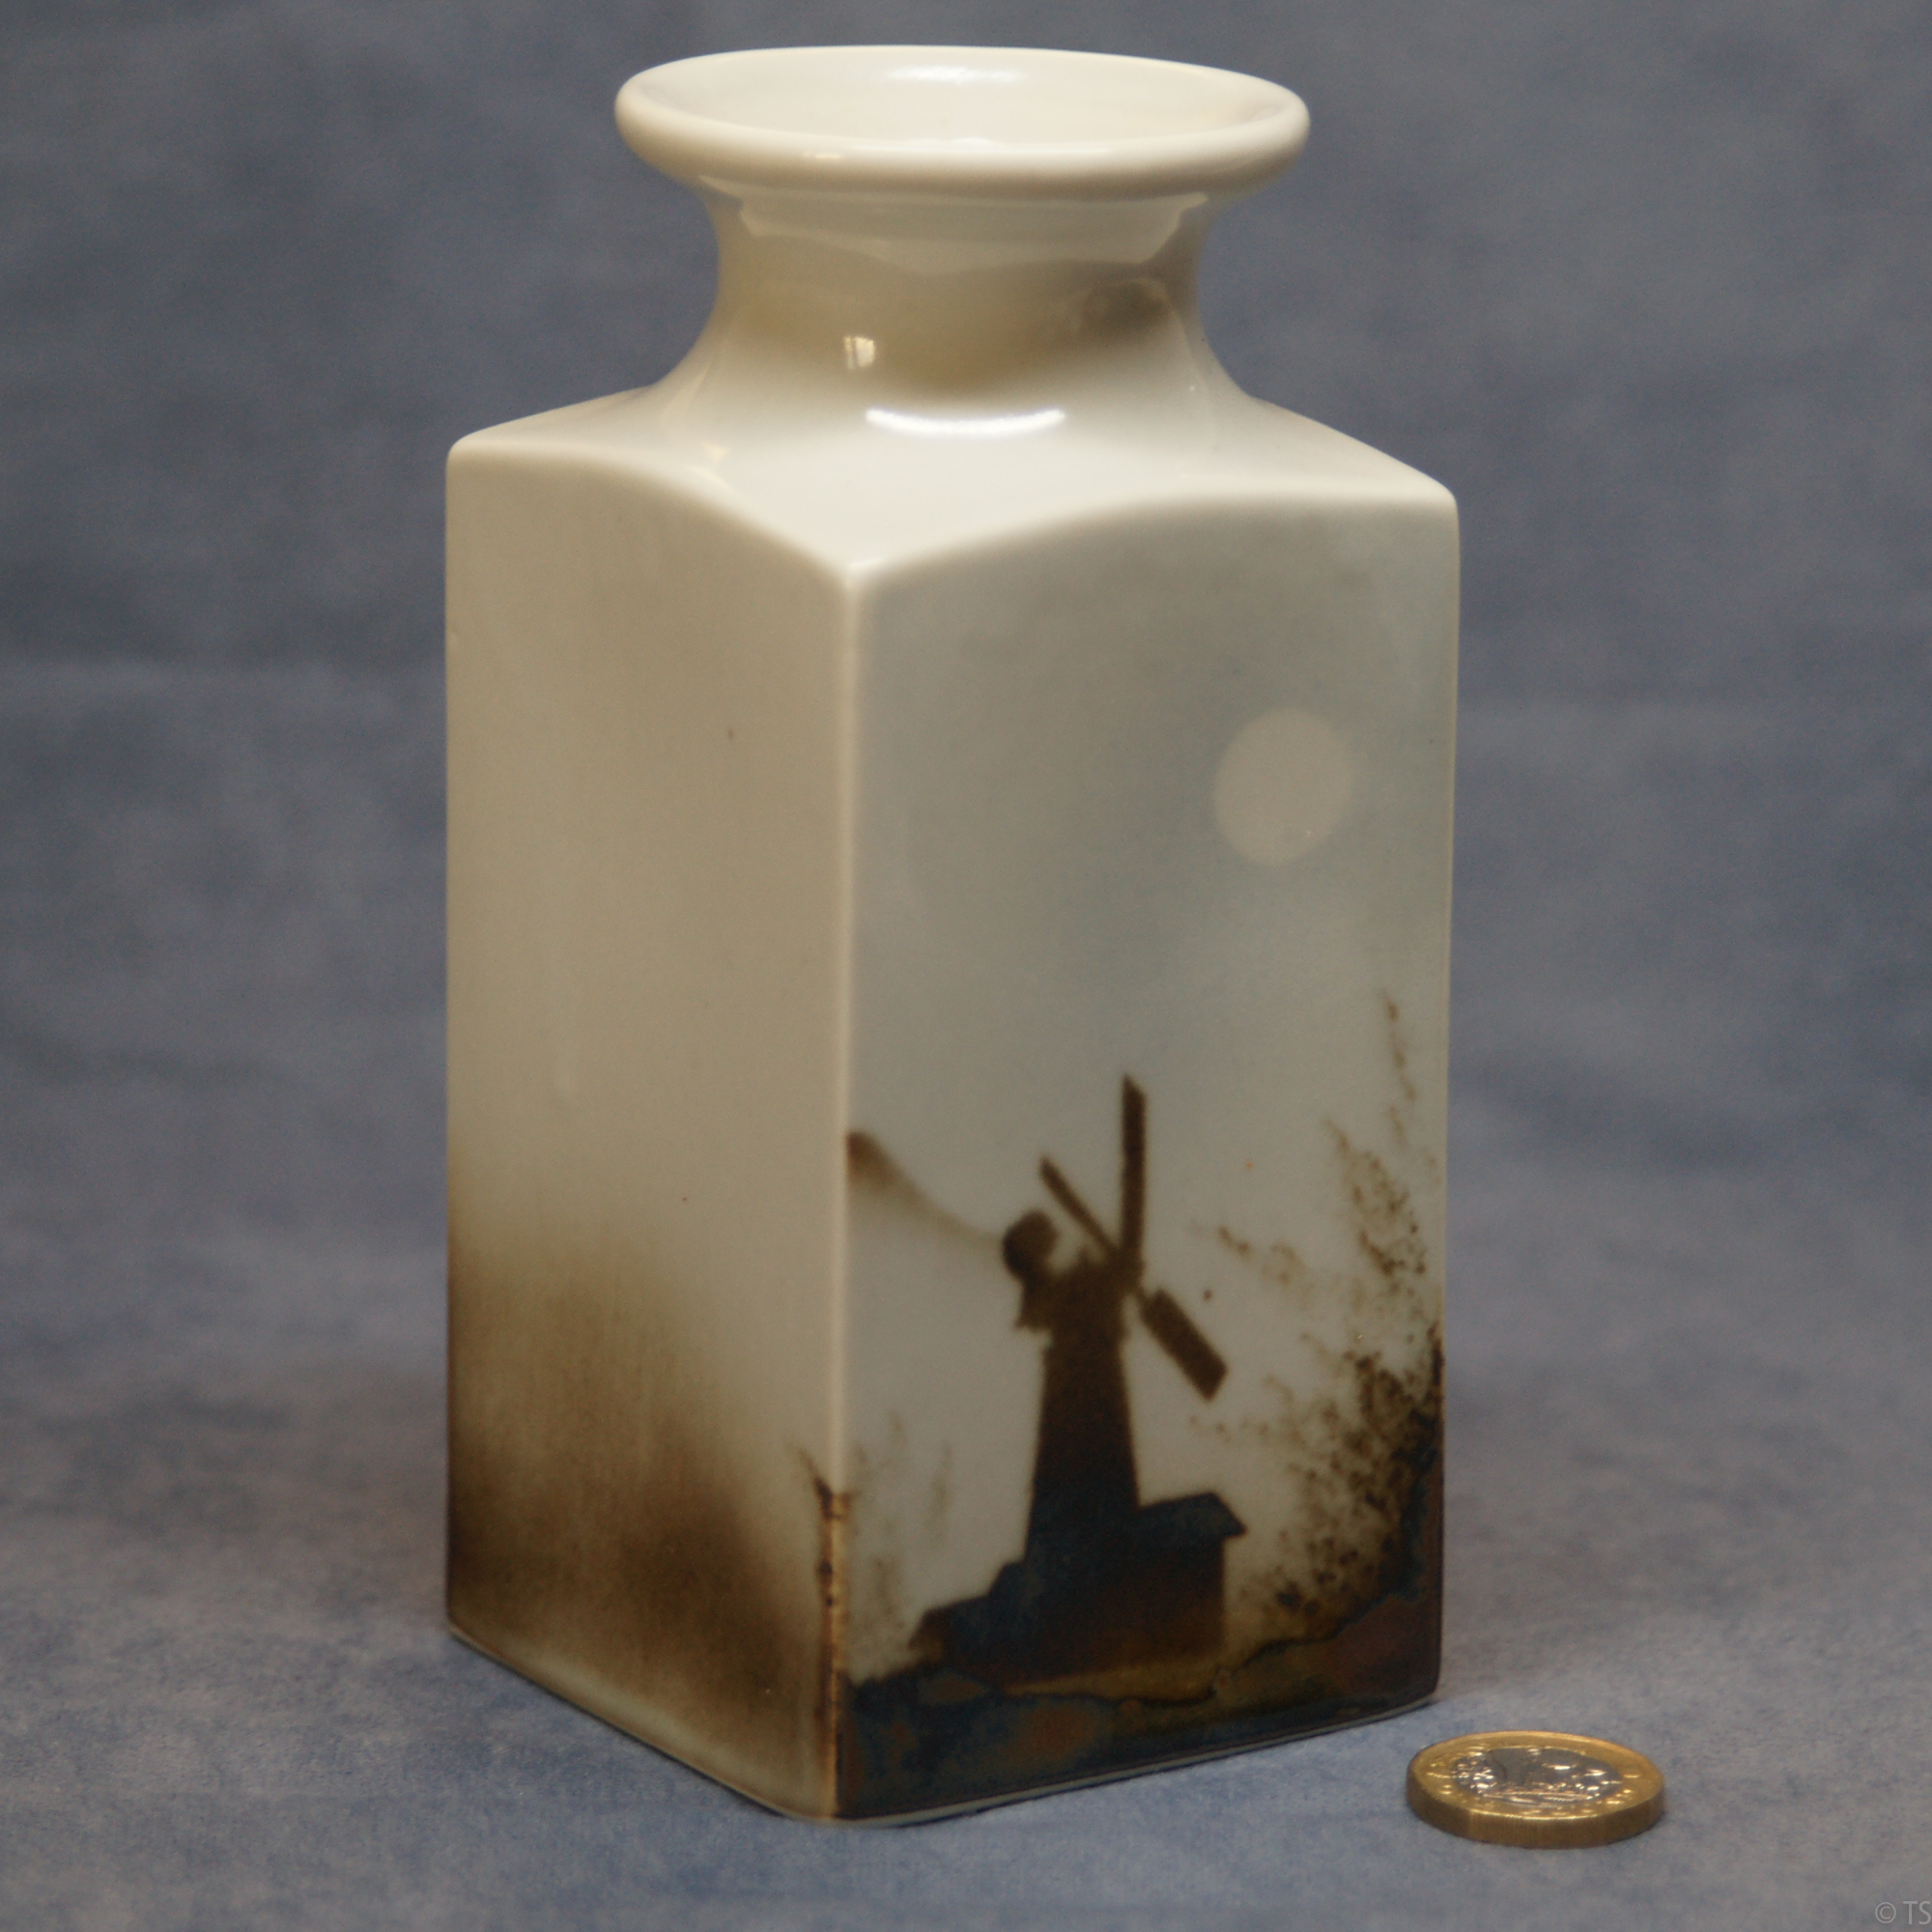 Large Square Vase Windmill